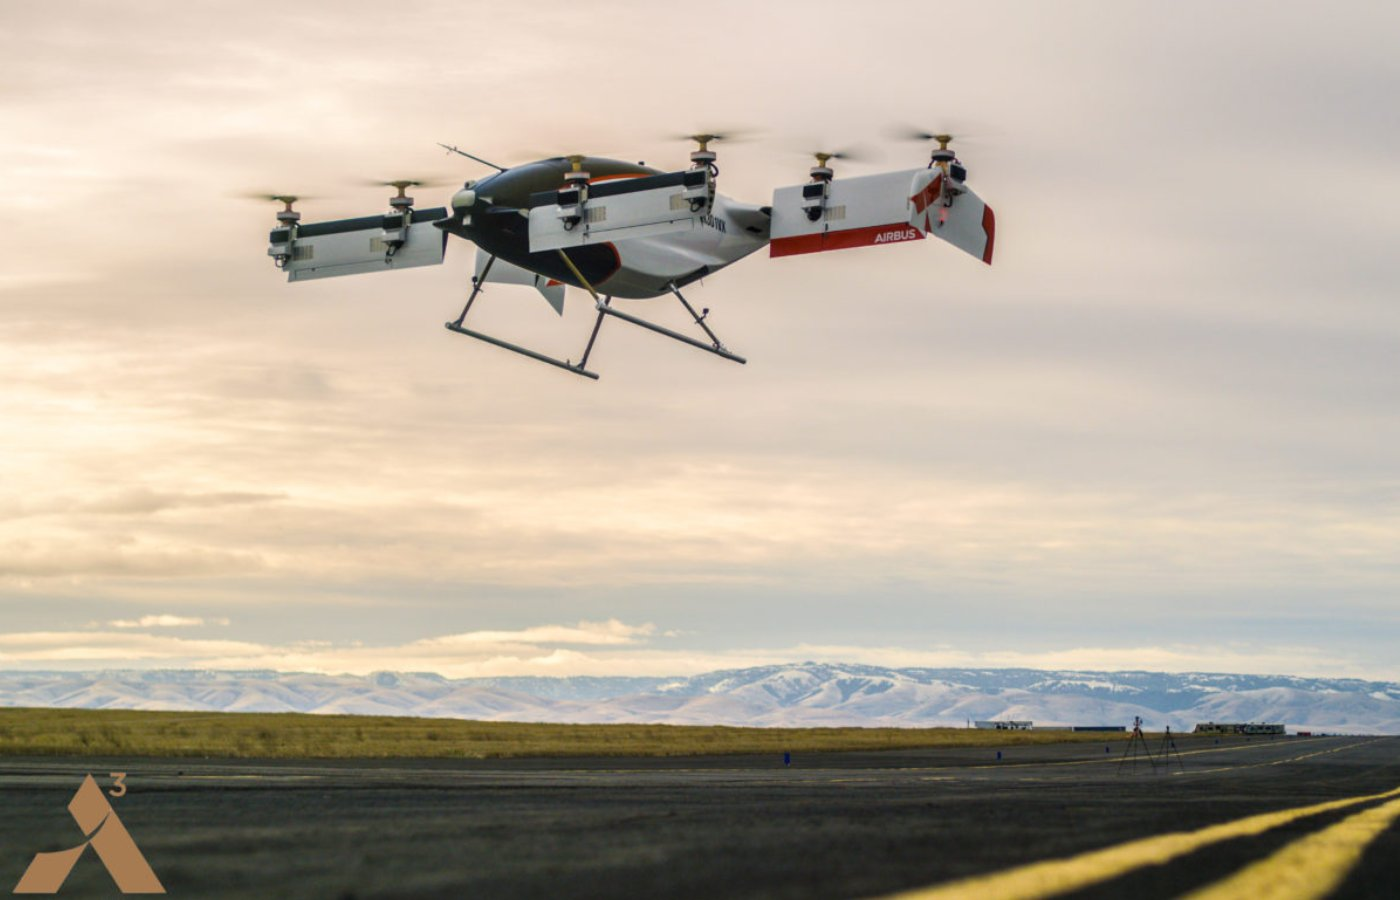 Vahana, the all electric, self-piloted, VTOL aircraft from A³ by Airbus